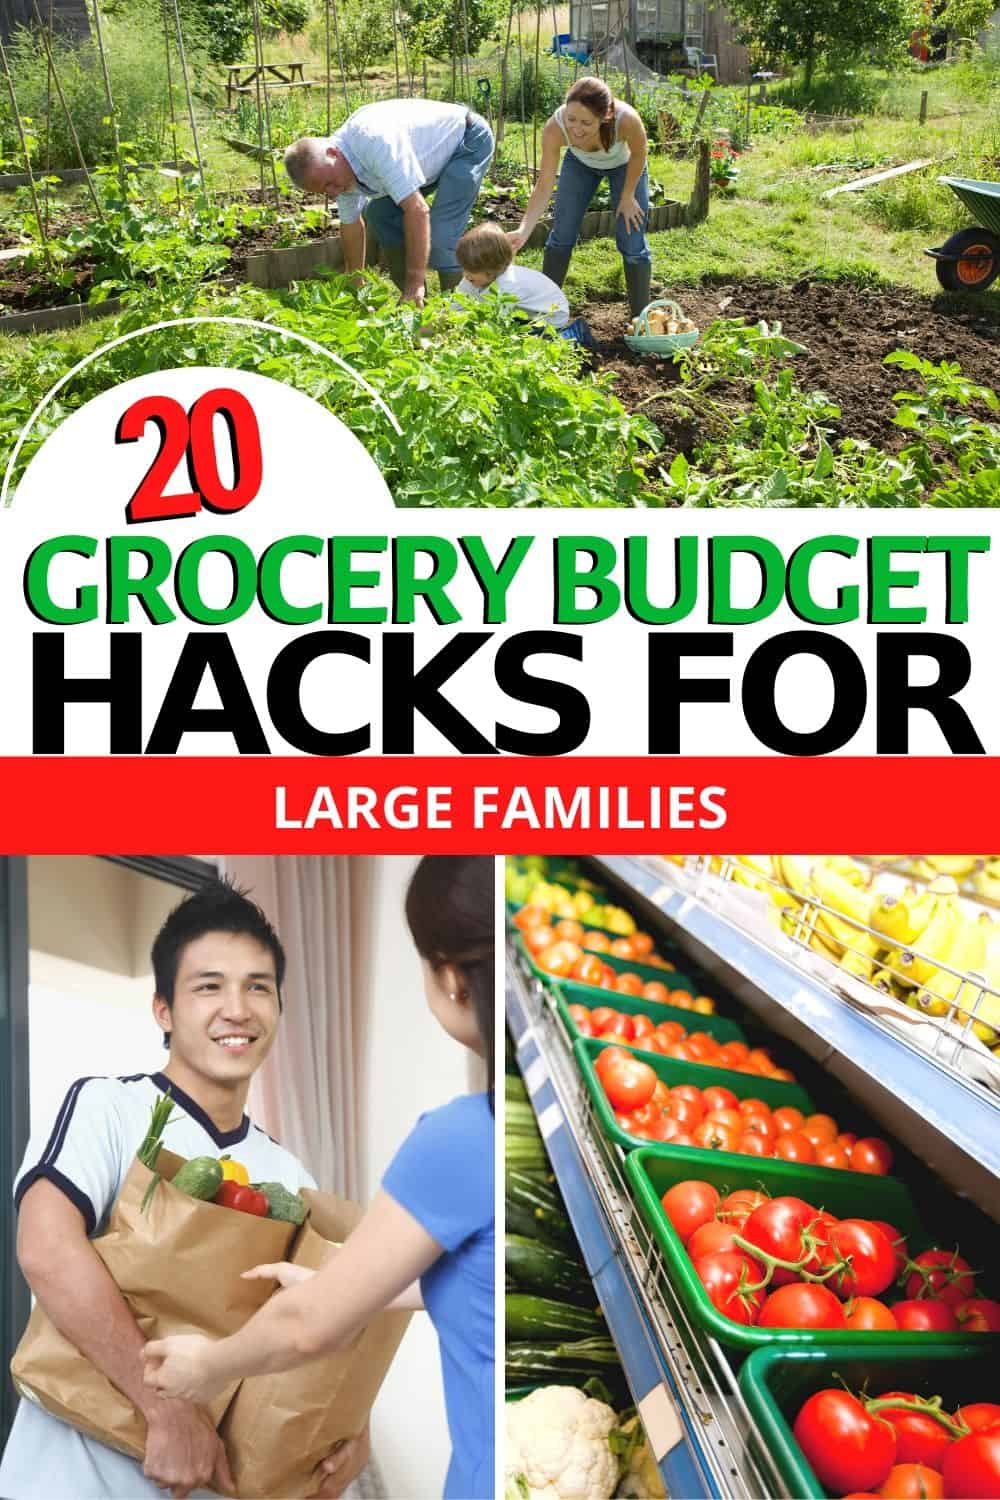 Want to learn how they do it? Here are 20 Grocery Budget Hacks for Big Families to help you save money. And no you don't need a big family to save! via @mystayathome